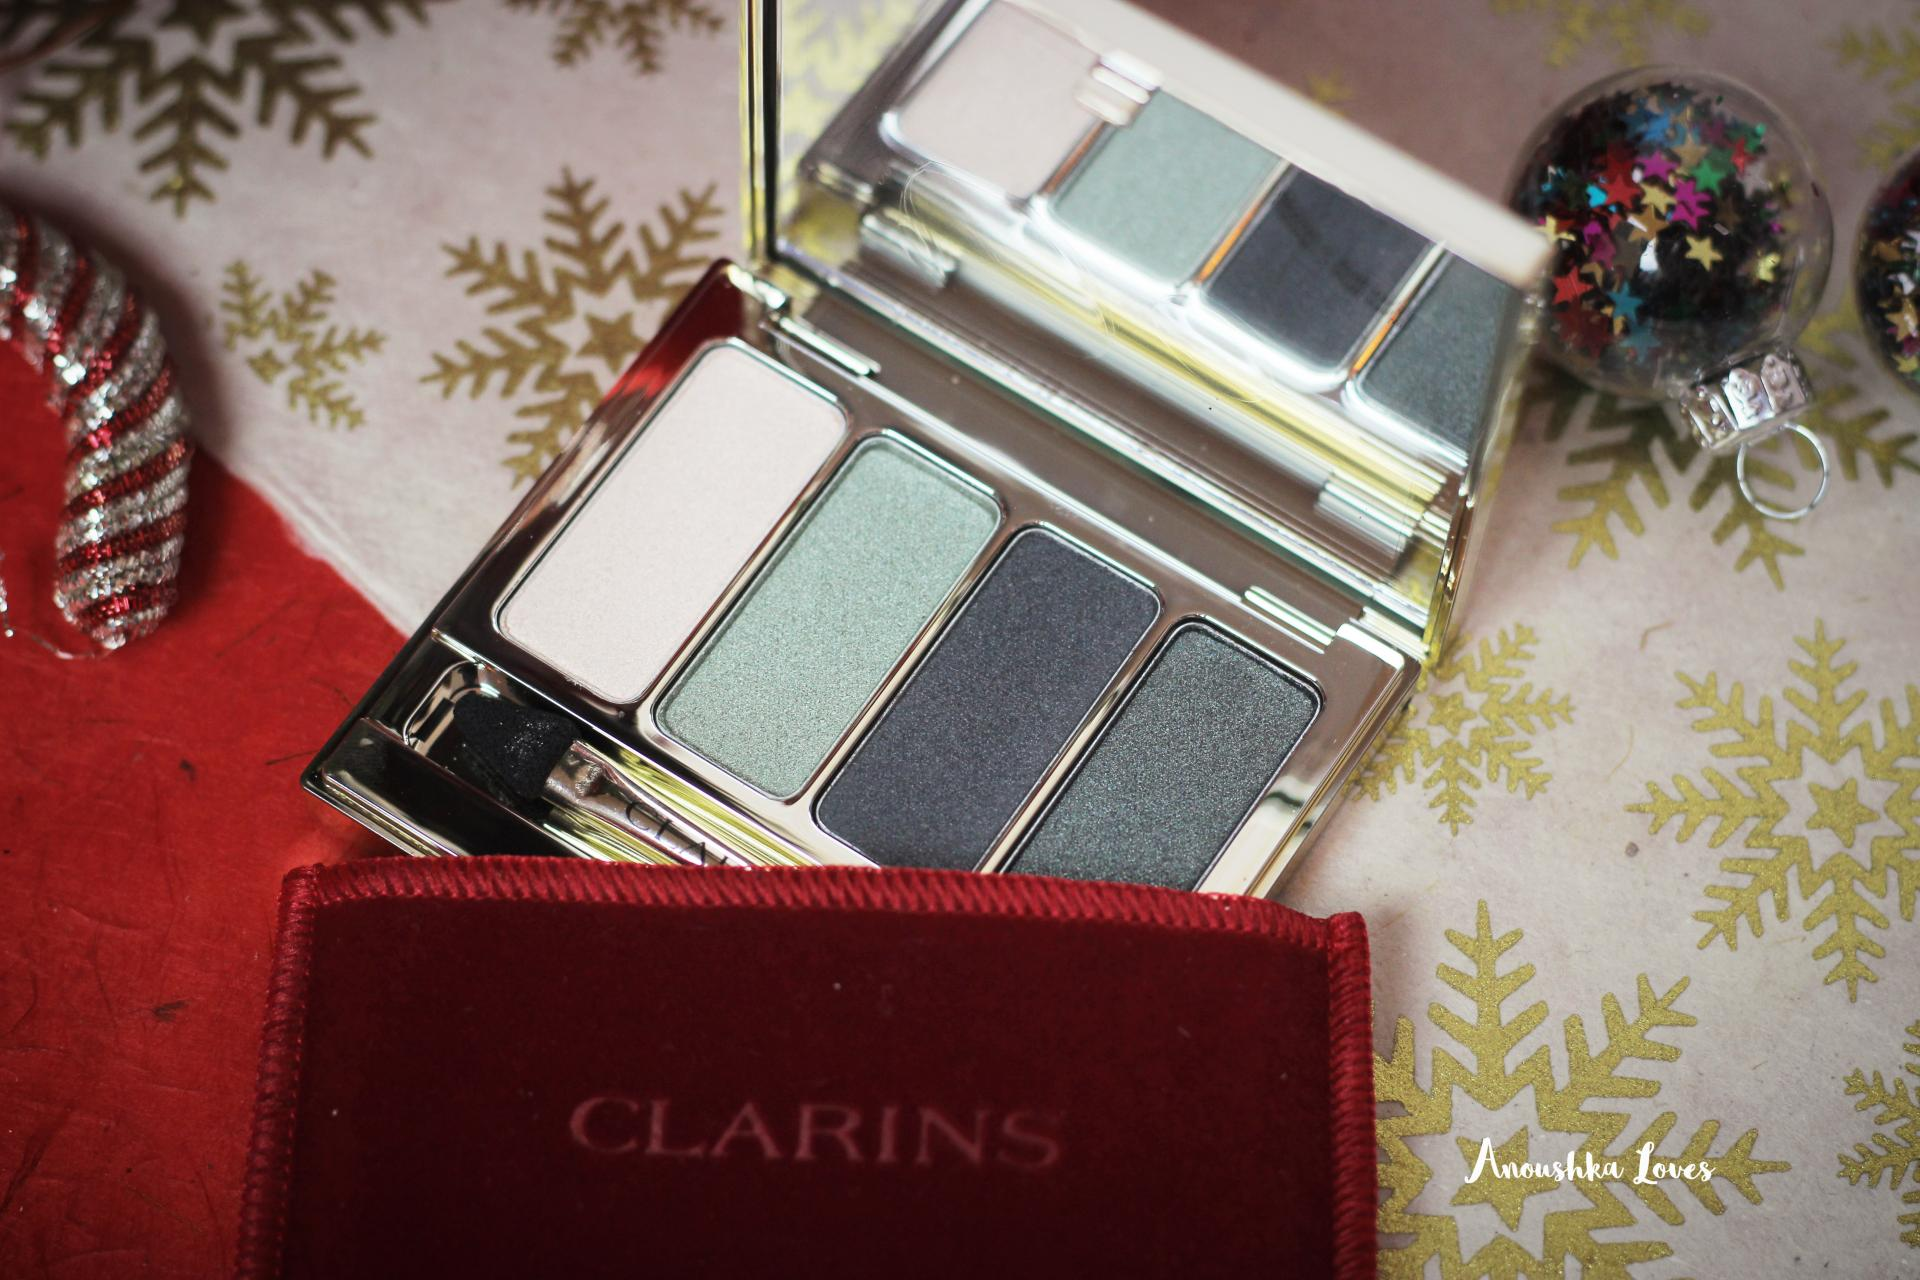 Clarins Graphik - The Autumn Collection